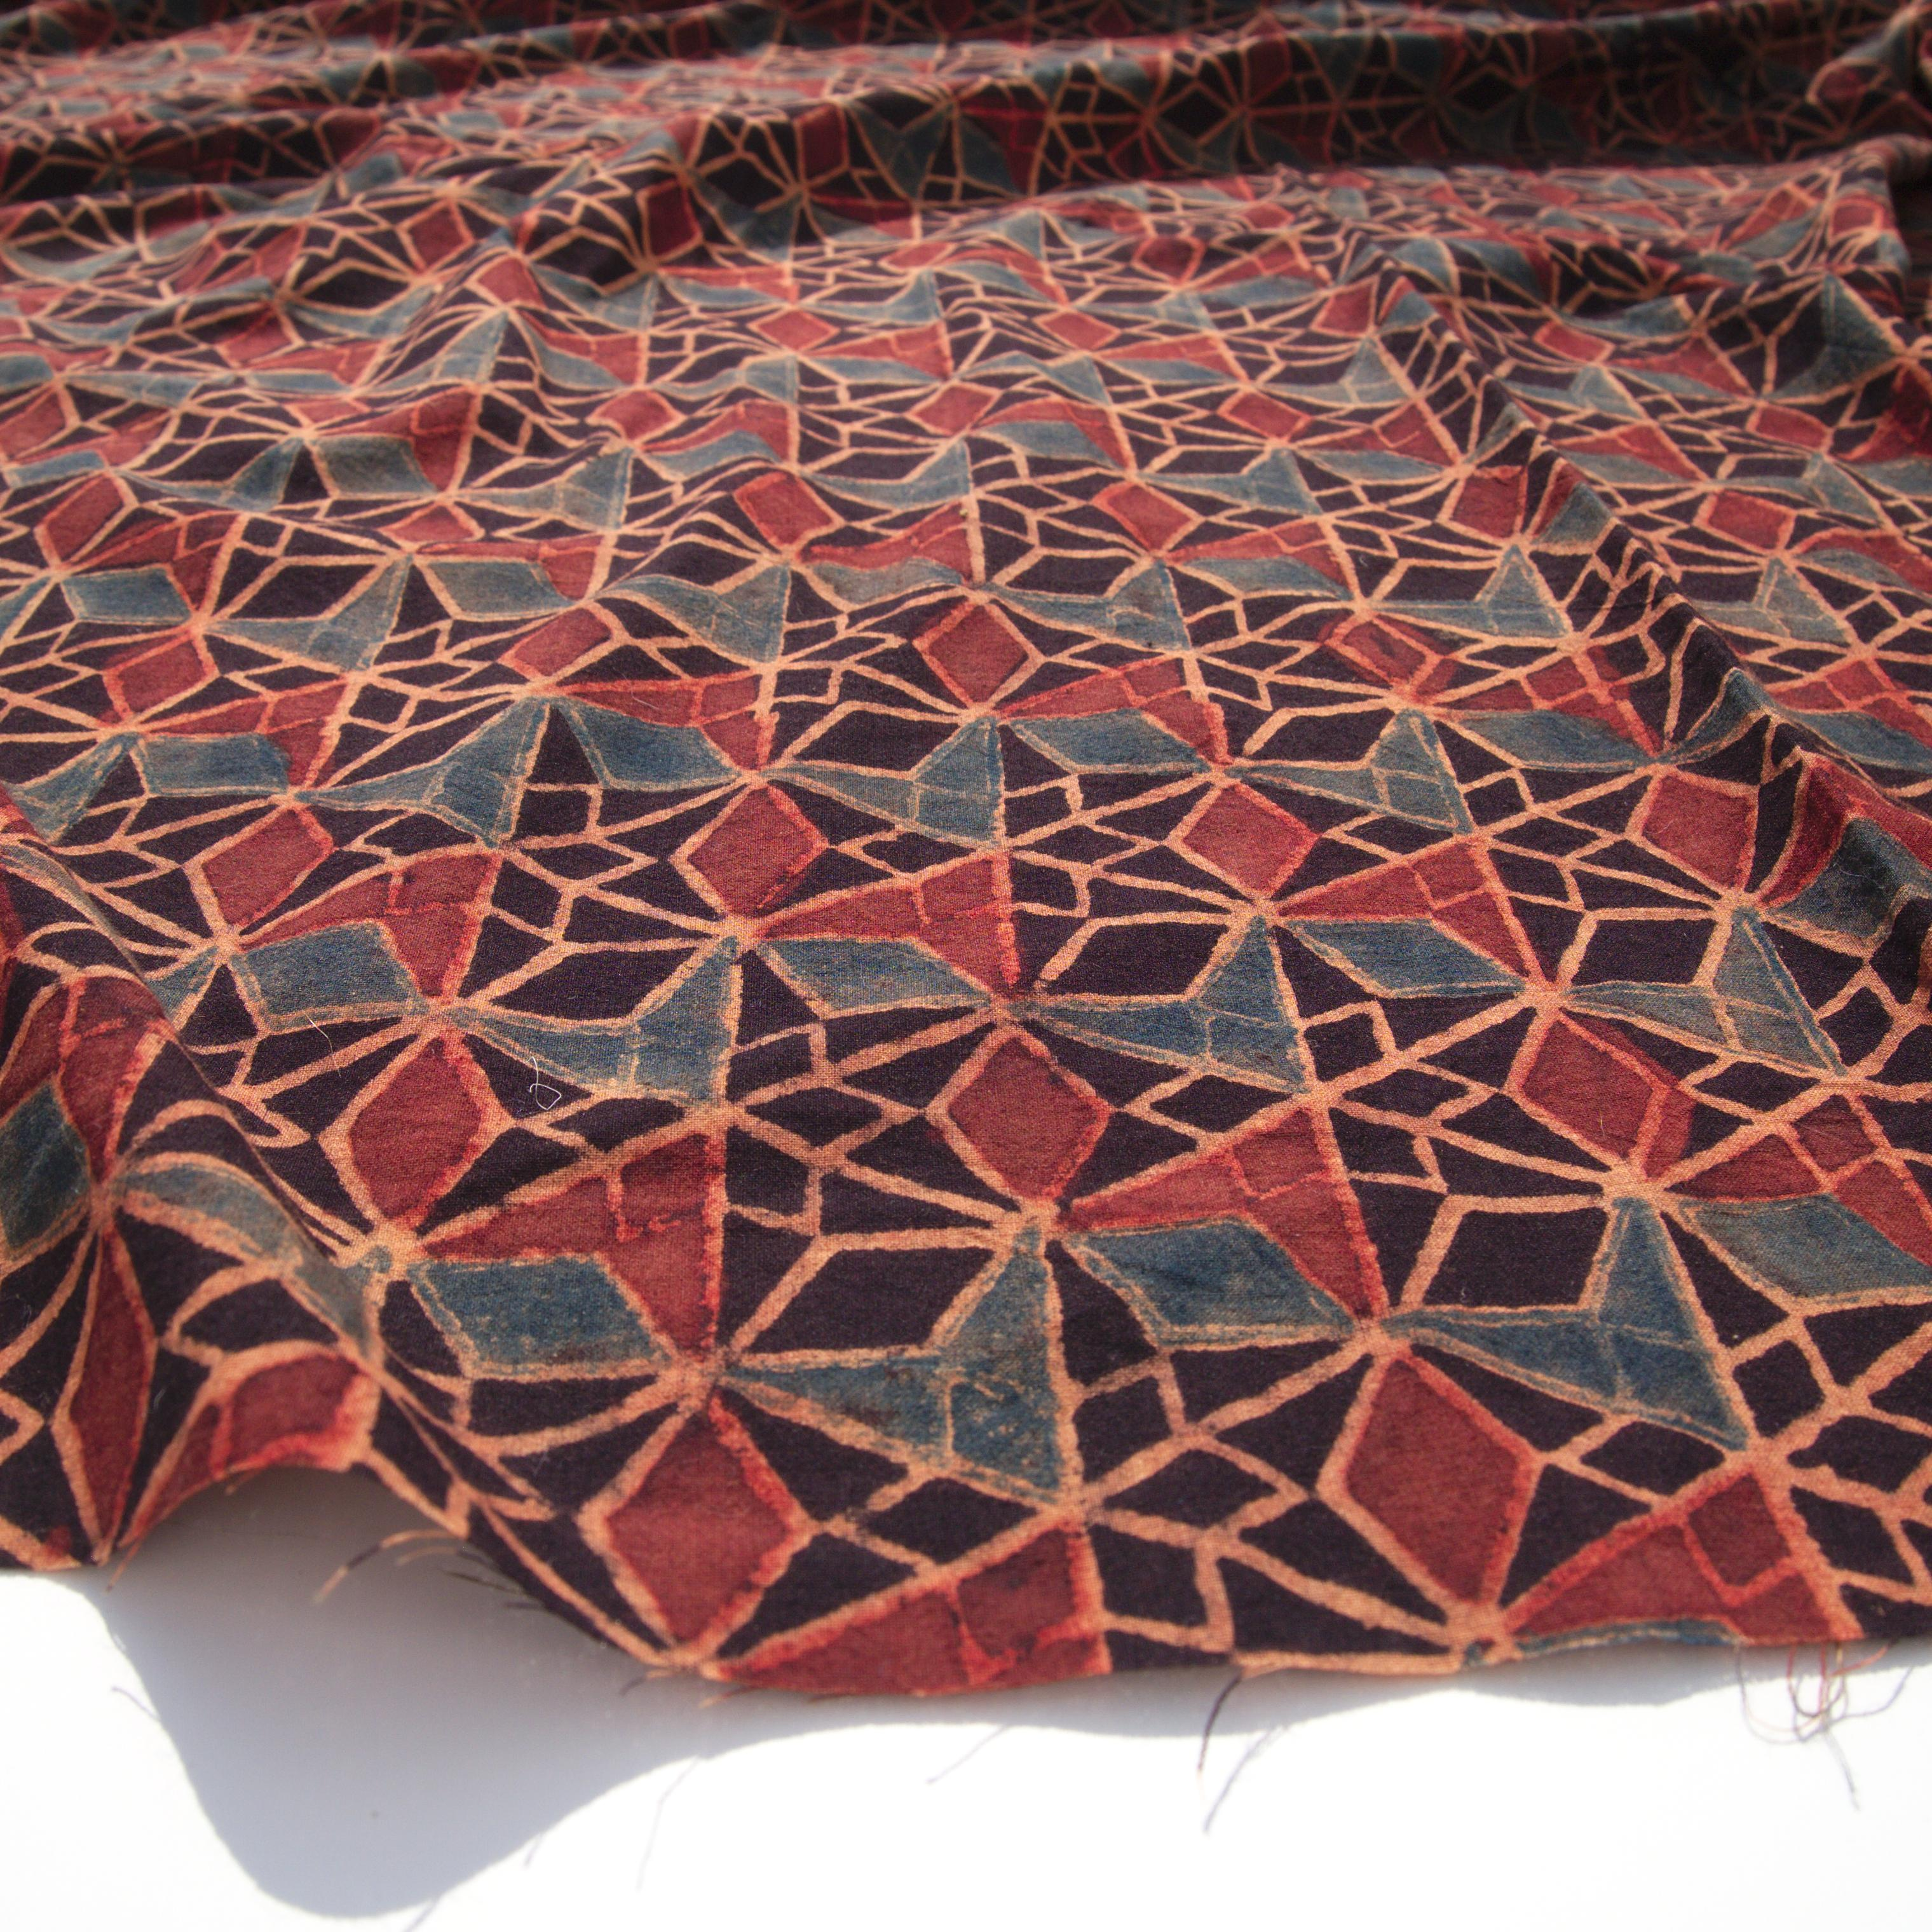 Block Printed Fabric, 100% Cotton, Ajrak Design: Black Base, Madder Root Red, Blue Wing. Angle